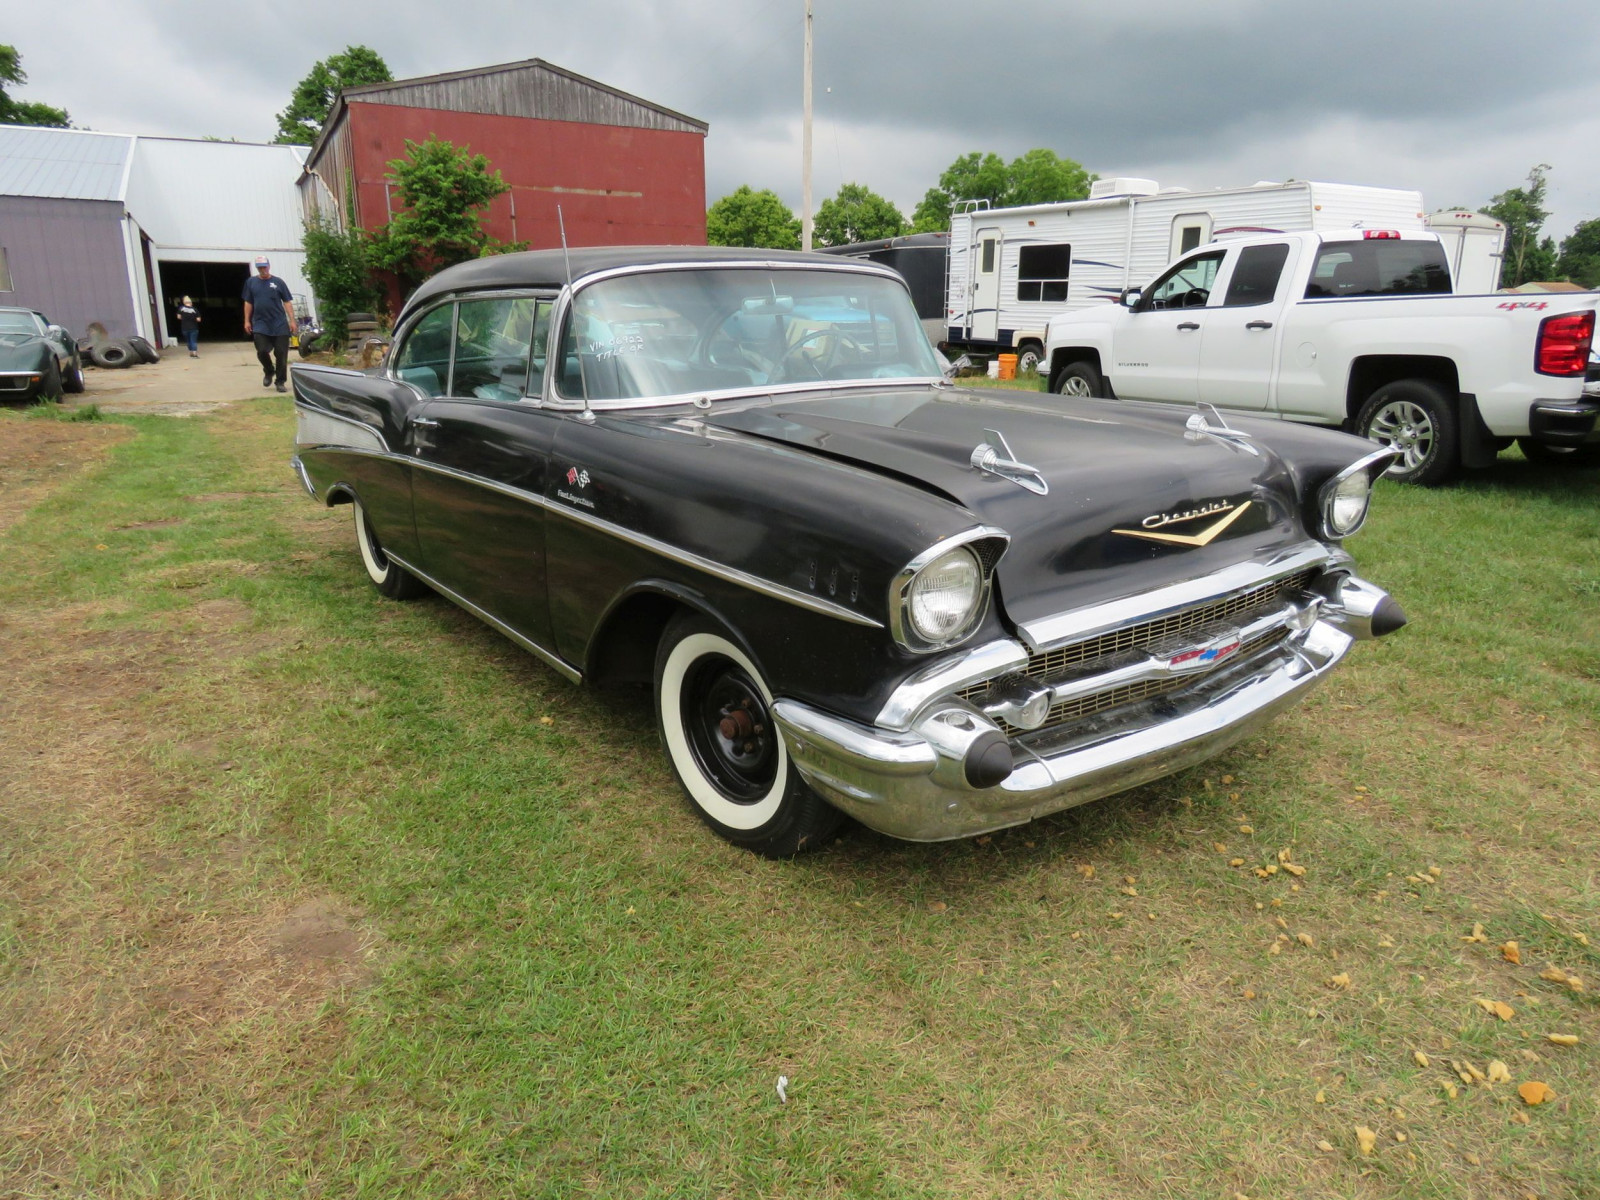 1957 Chevrolet Belair Fuel Injected 2dr HT - Image 3